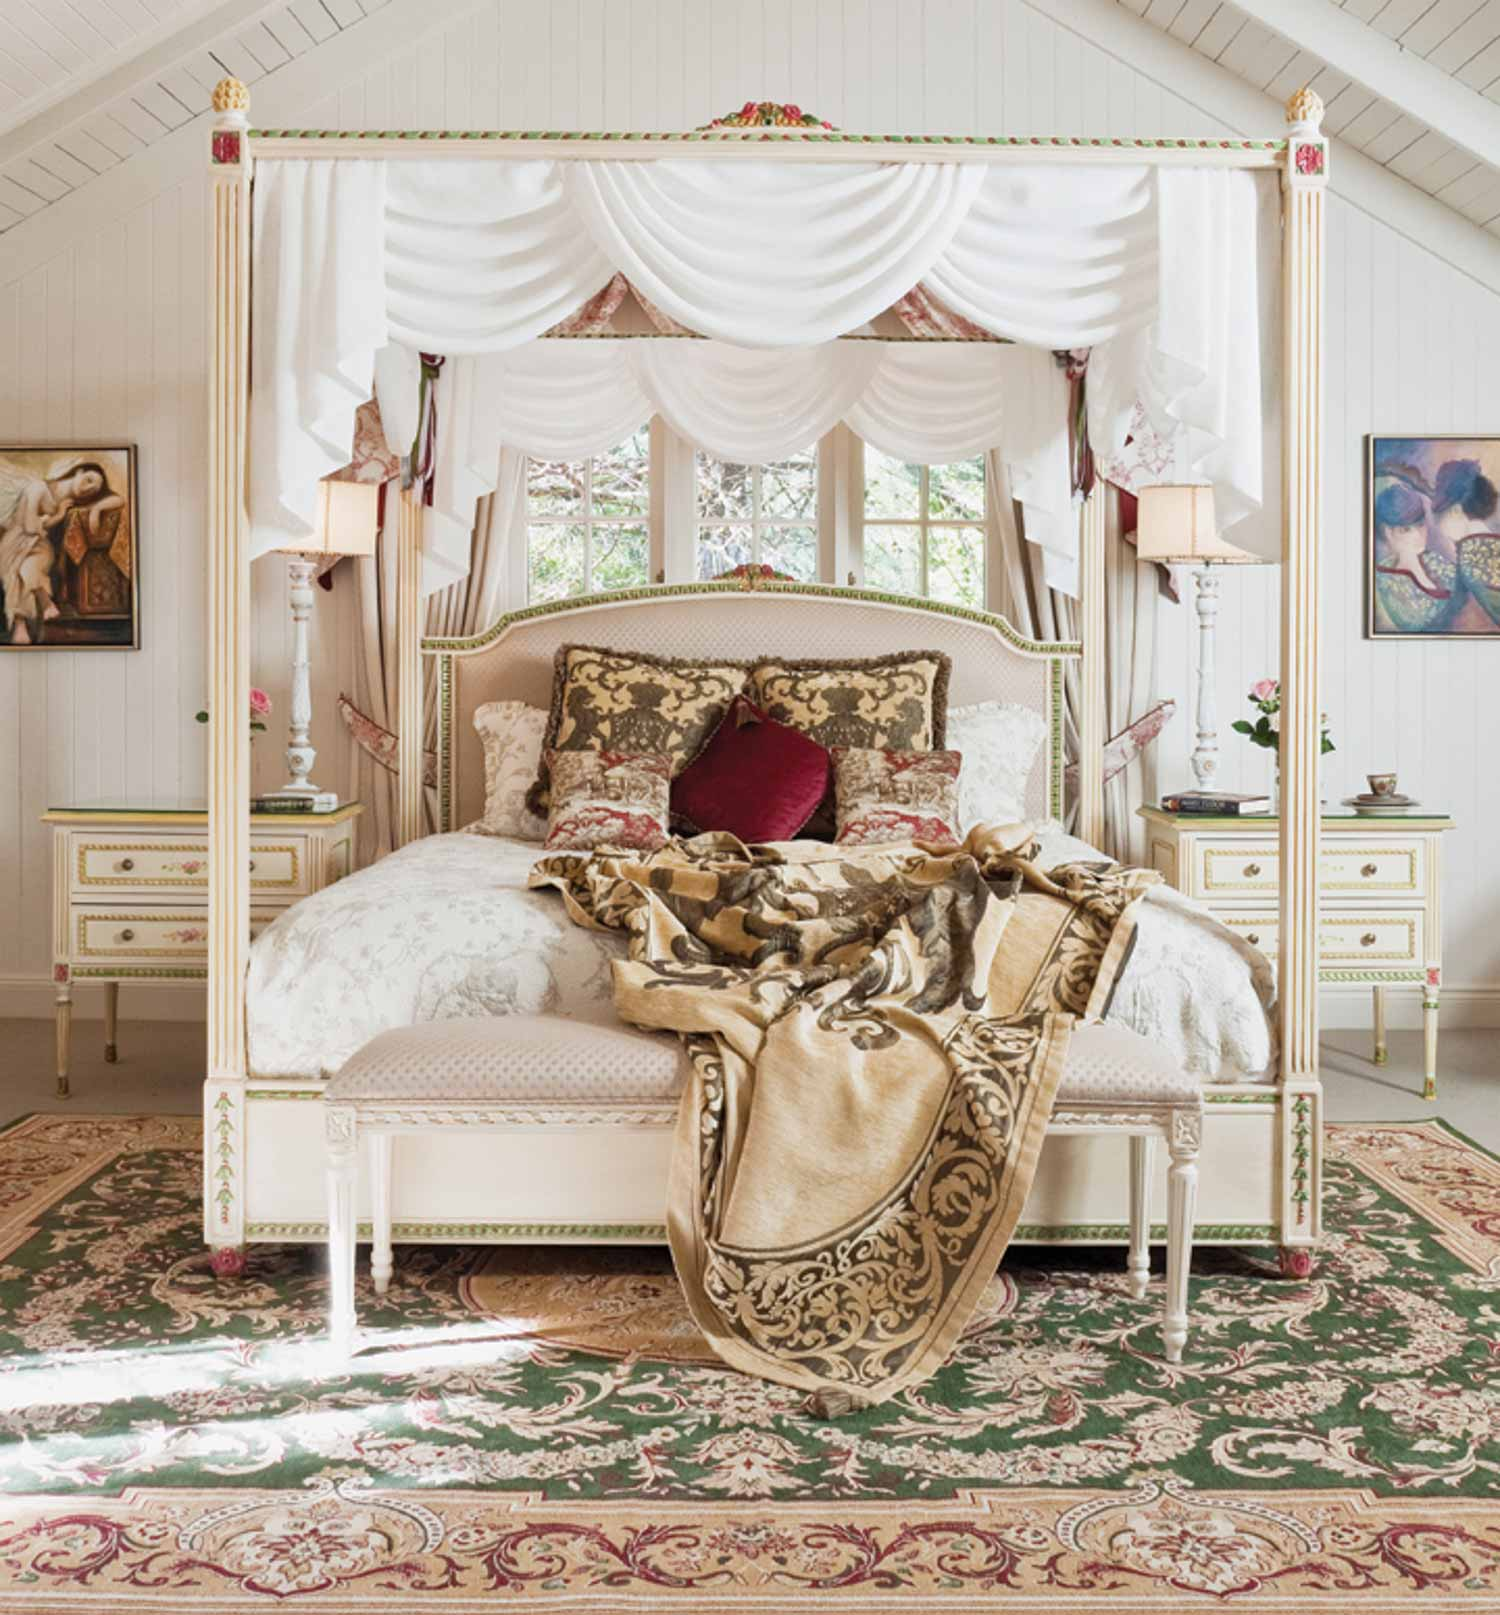 6 French four poster bed, bed end stool and bedside tables in painted finish with rug